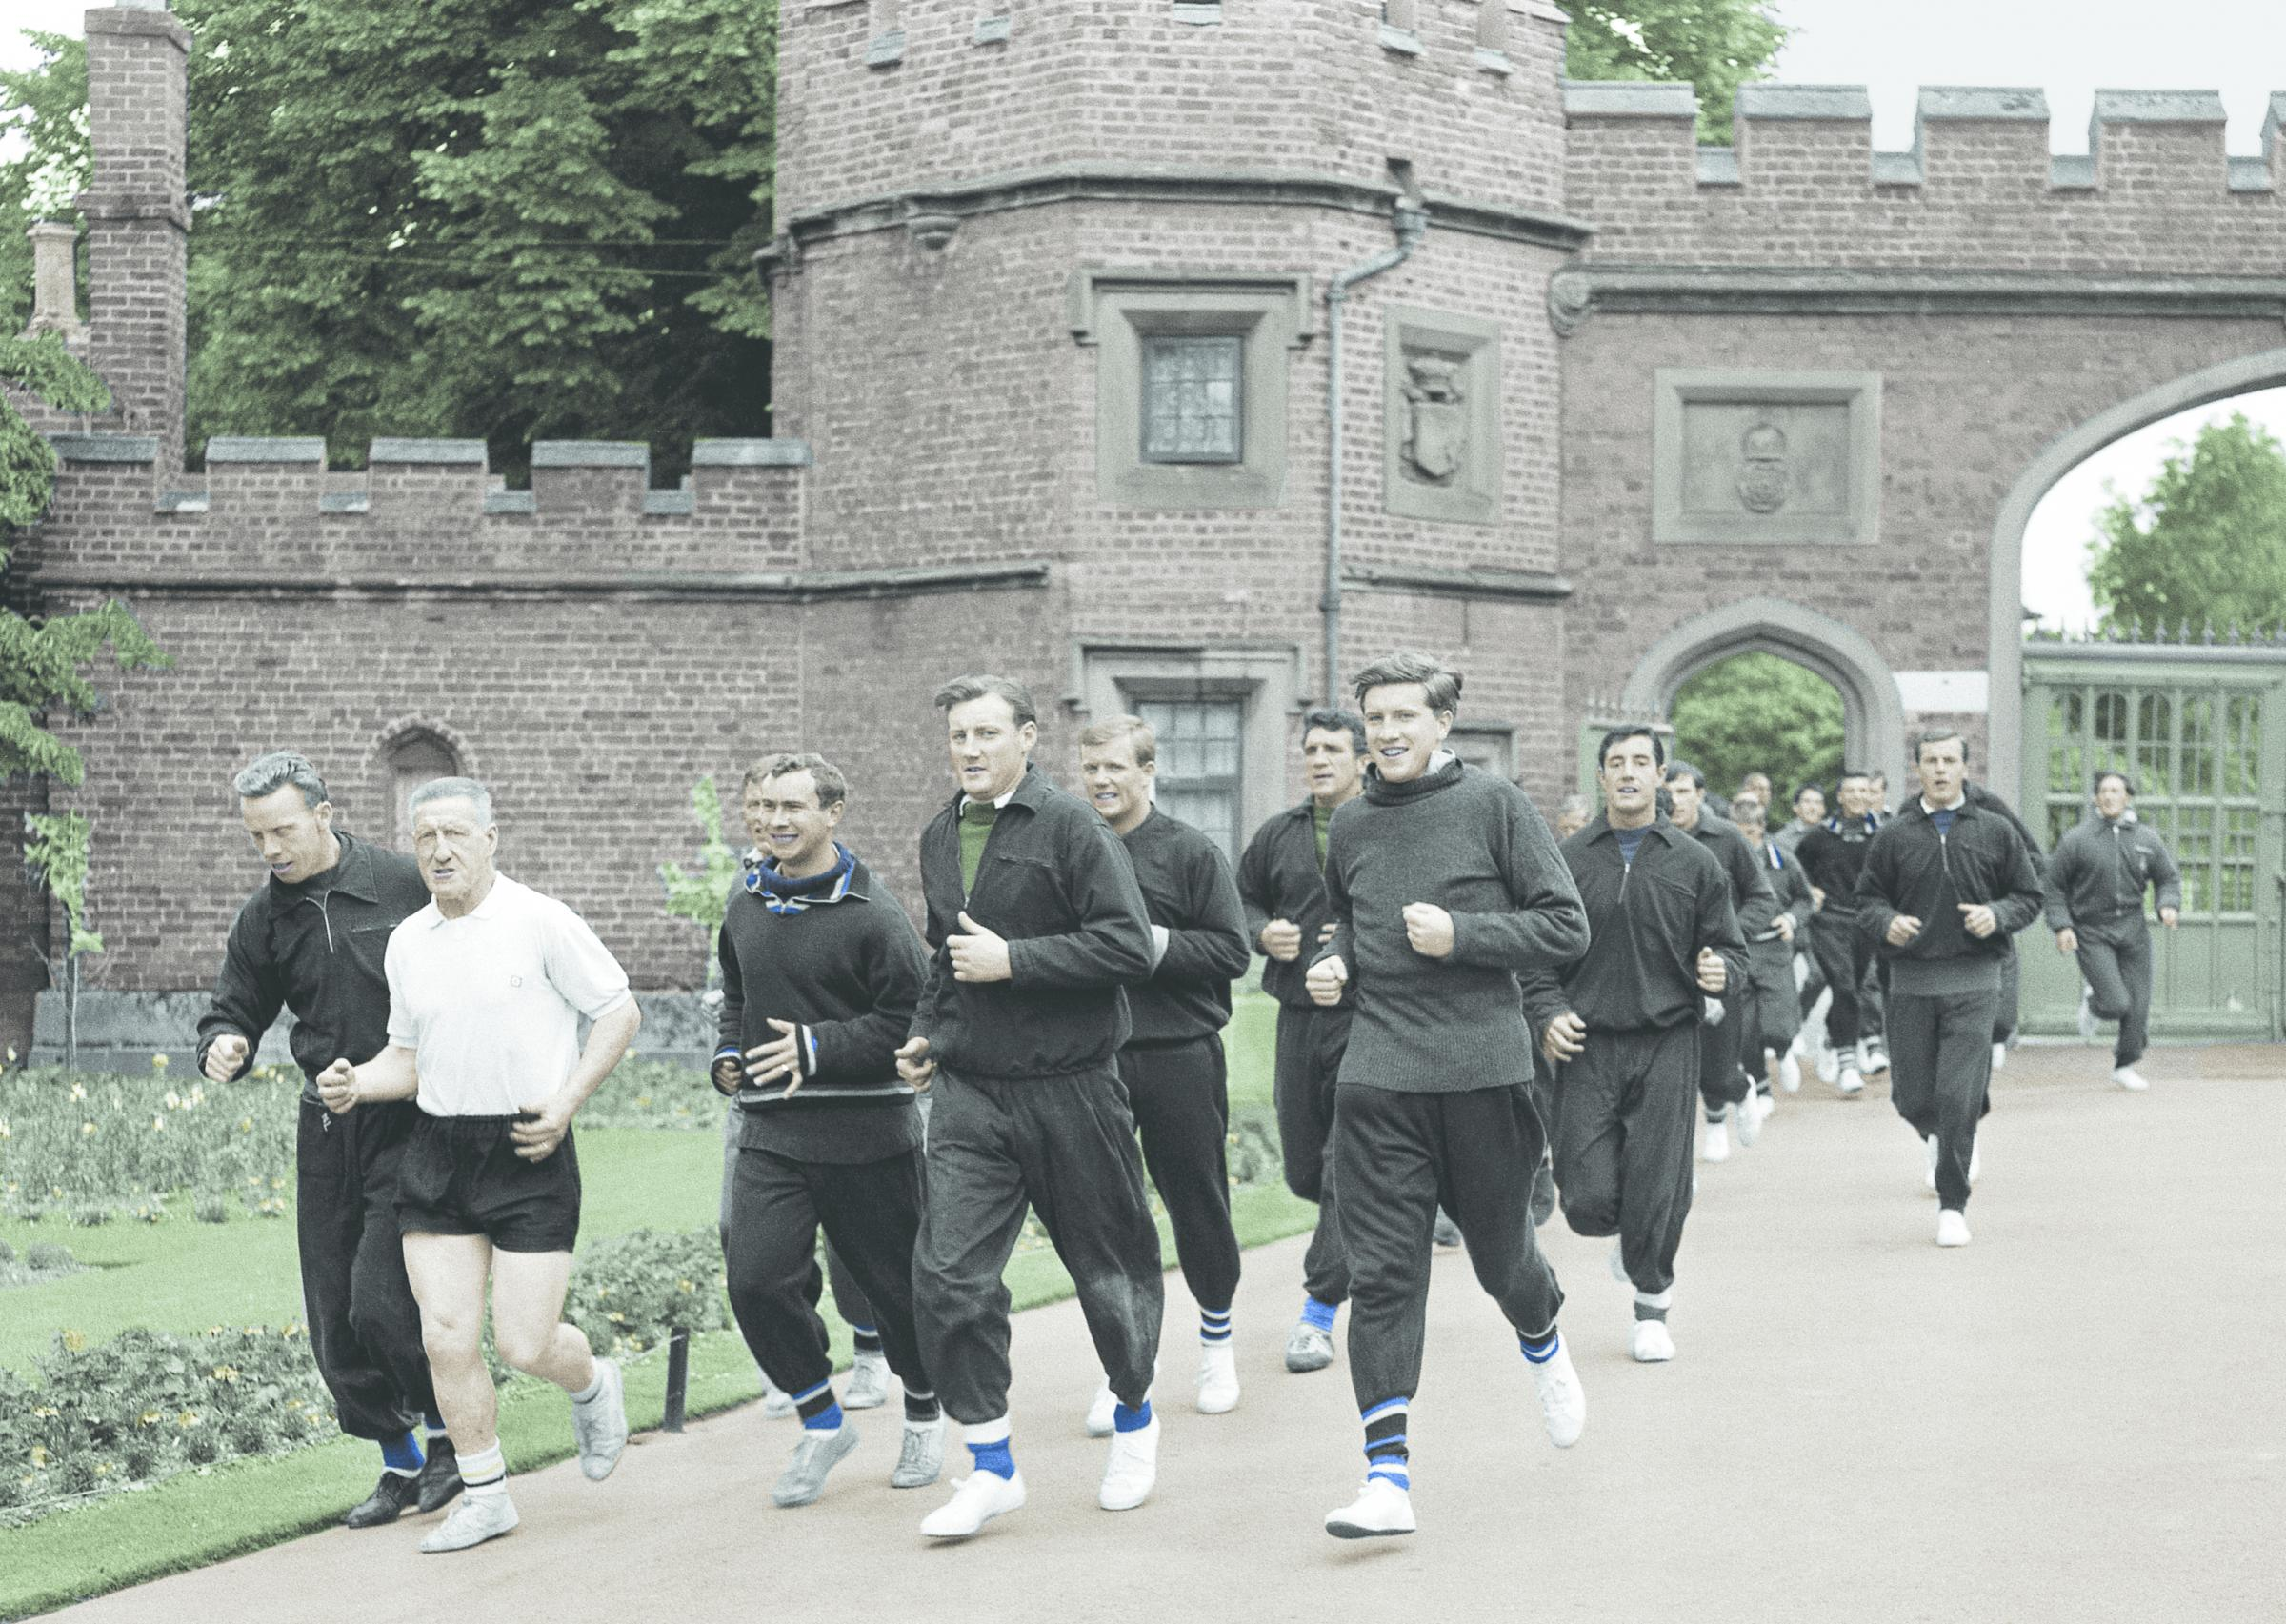 Memories of when Watford players used to train in parks